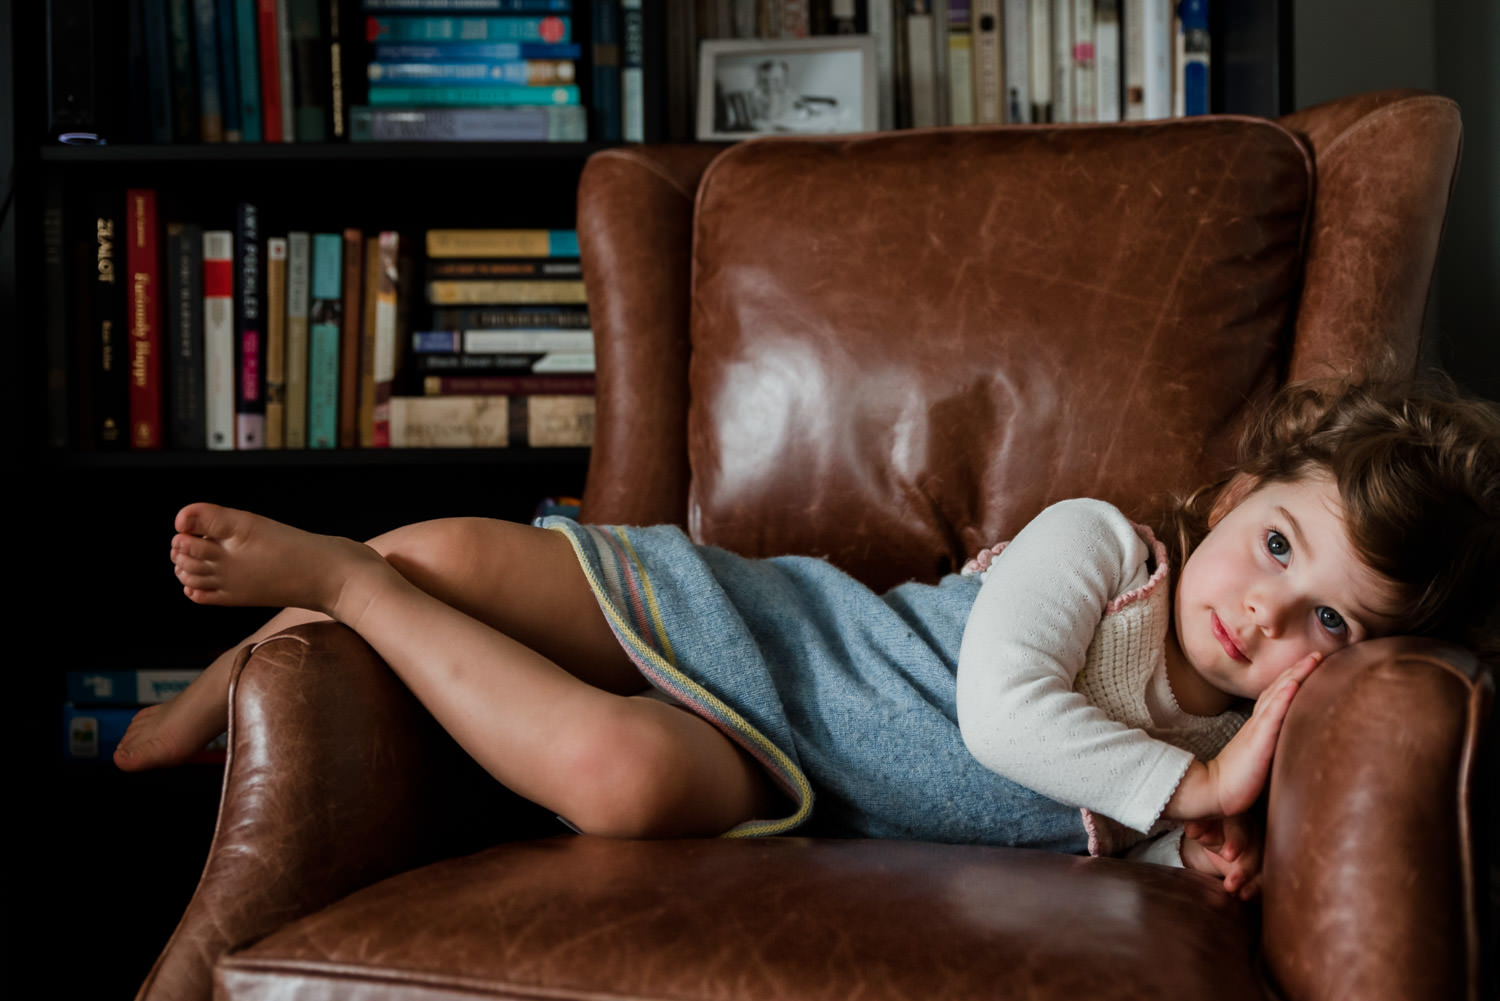 A little girl rests in a leather armchair.